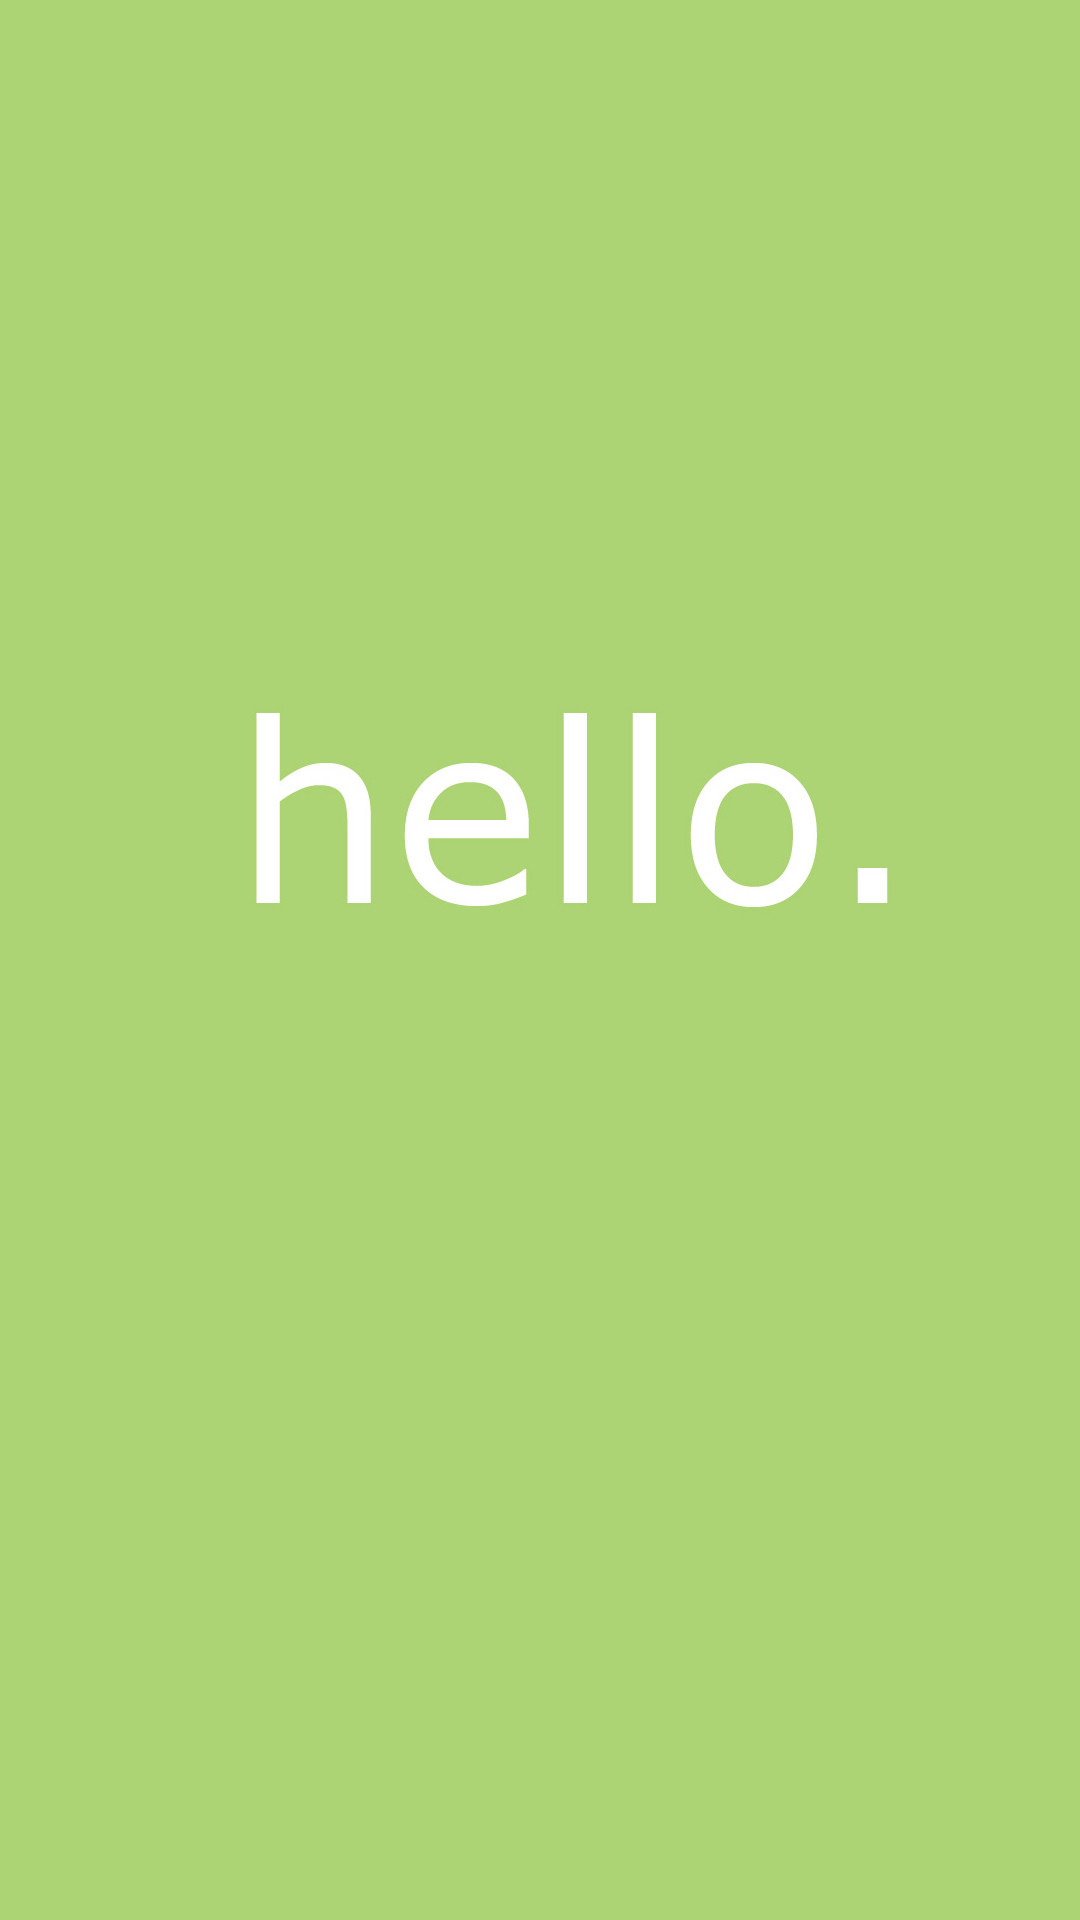 1080x1920 cute simple hello message android wallpaper